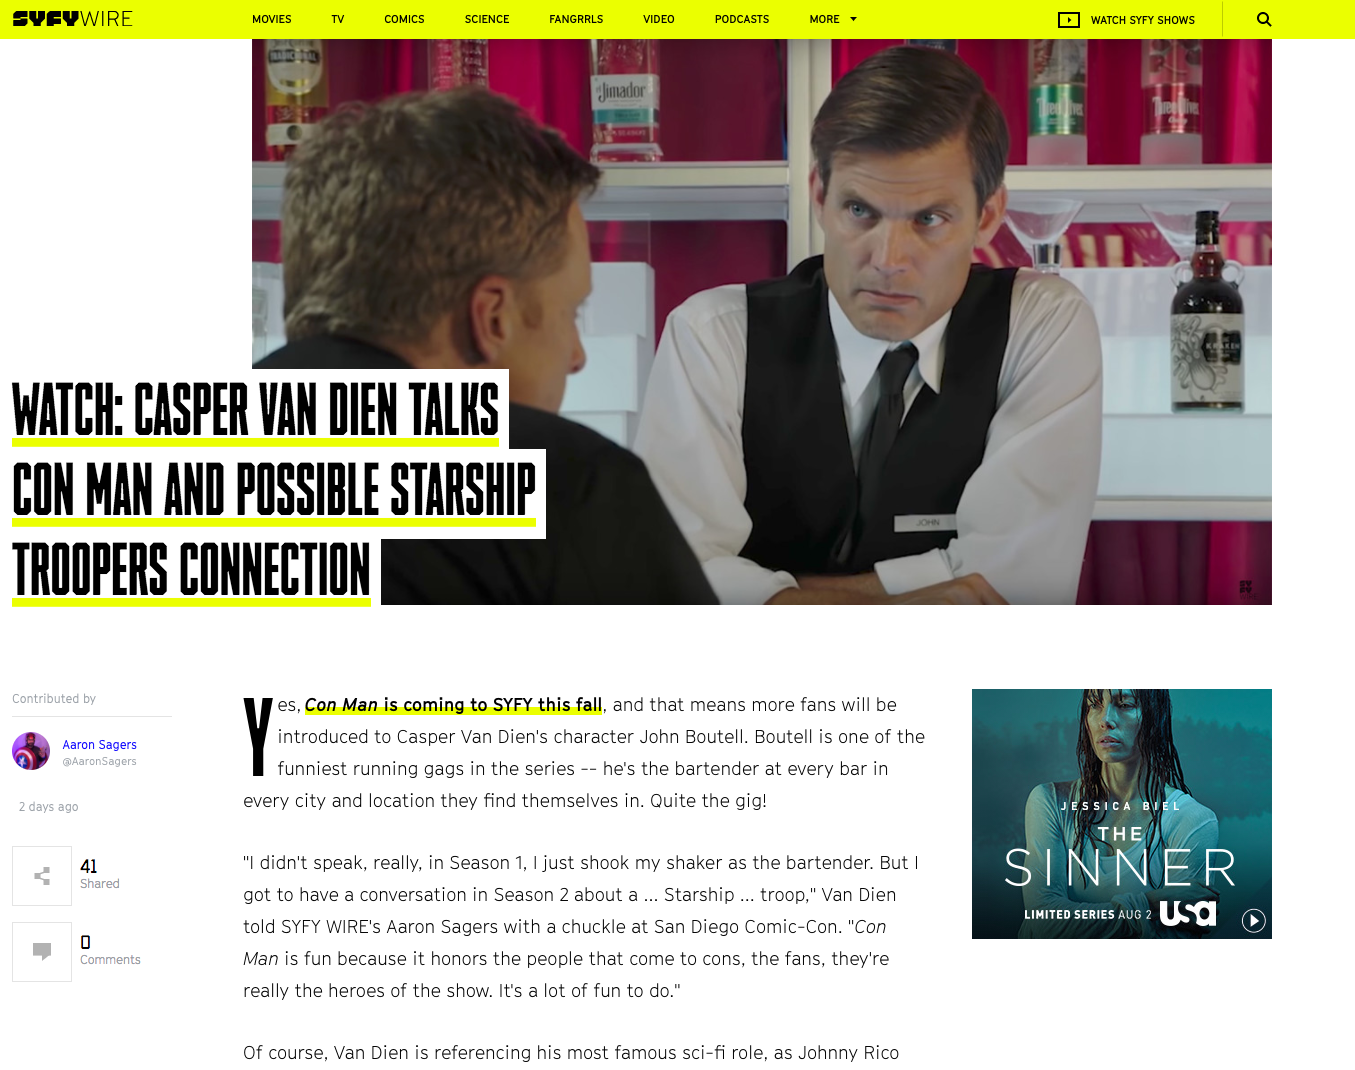 SYFY - WATCH: CASPER VAN DIEN TALKS CON MAN AND POSSIBLE STARSHIP TROOPERS CONNECTION